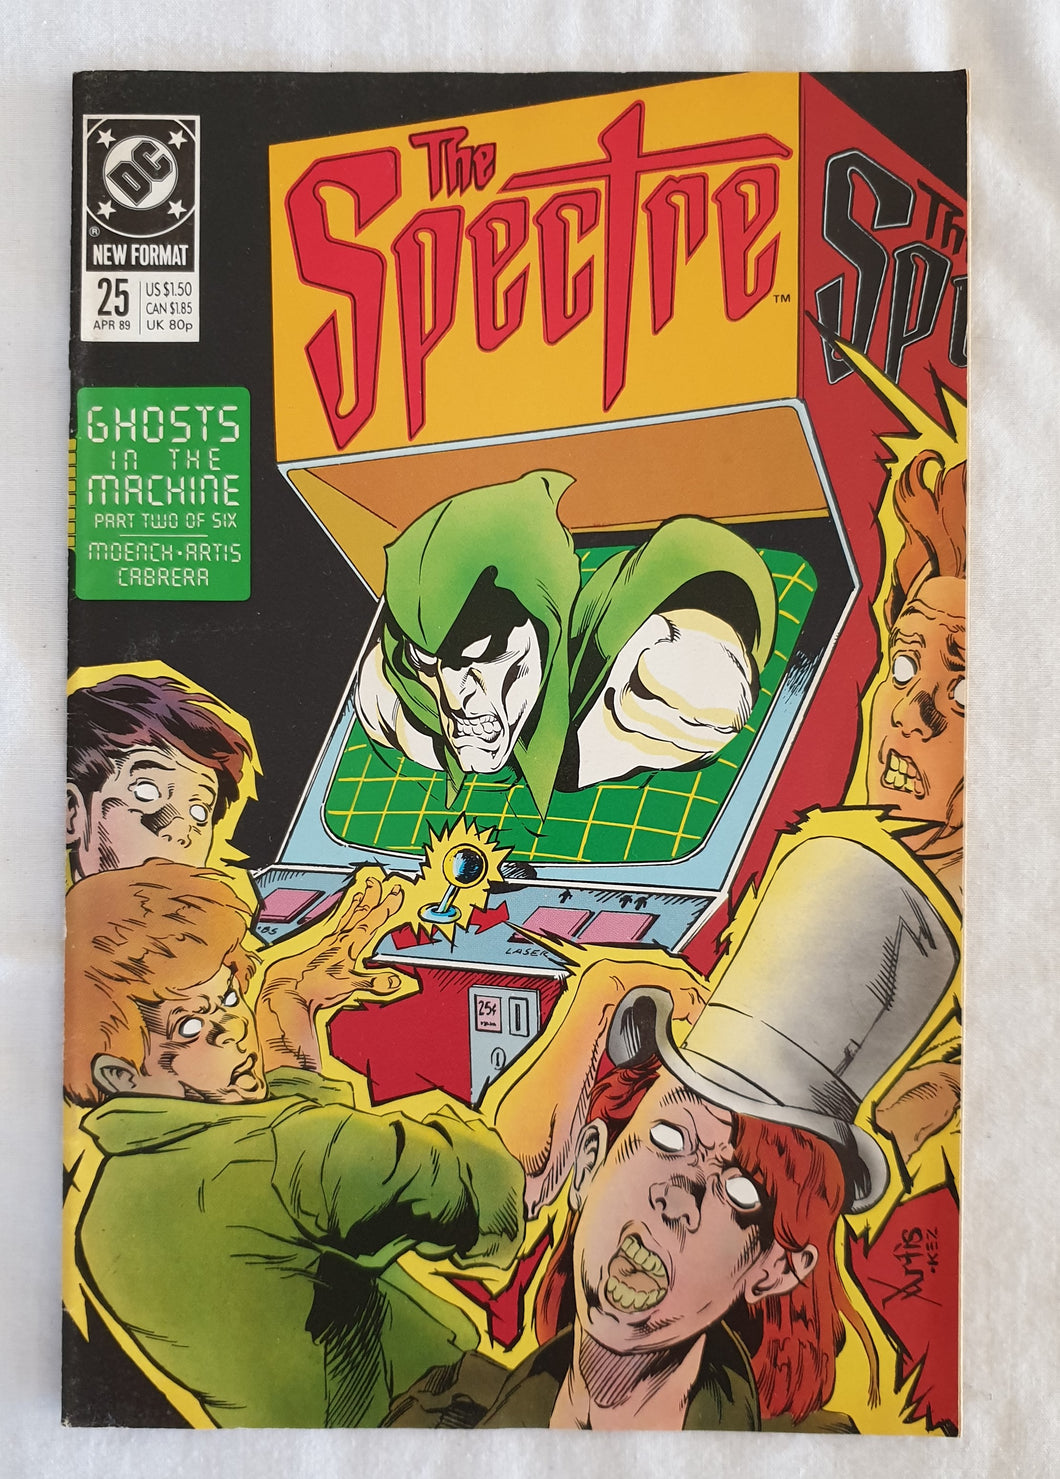 The Spectre #25 by DC Comics